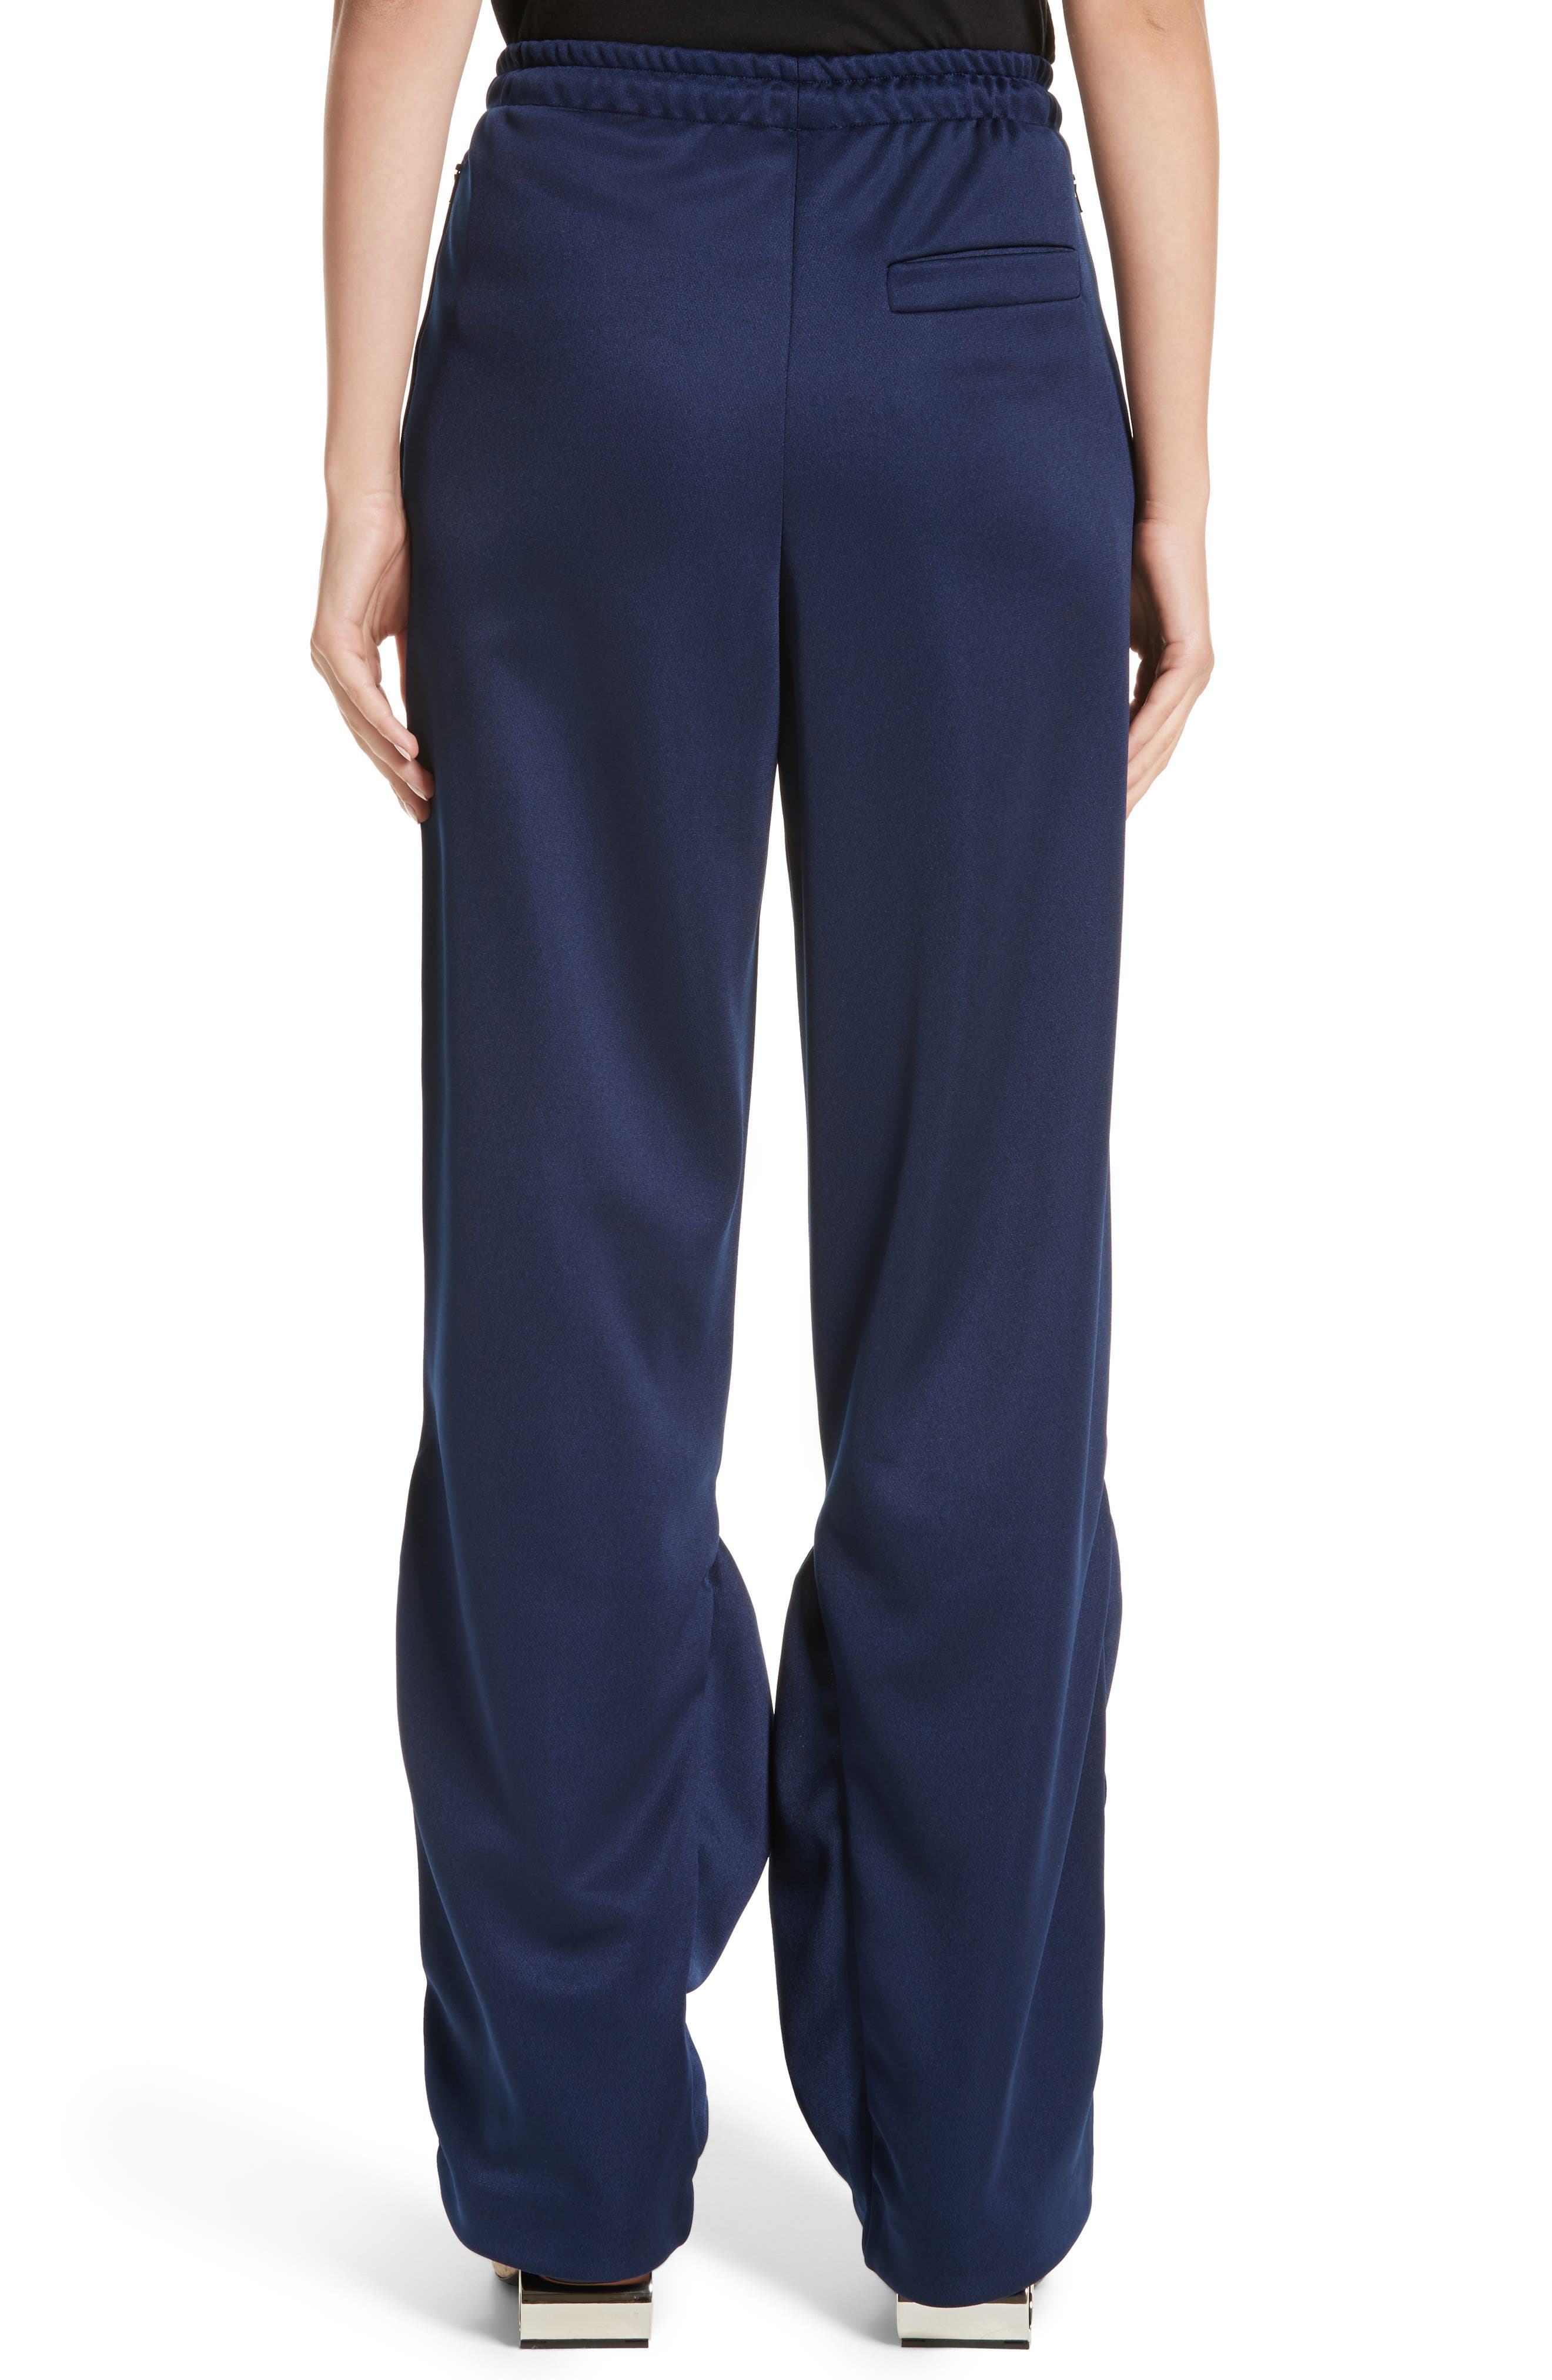 J.W.ANDERSON Jersey Pocket Hem Trousers,                             Alternate thumbnail 2, color,                             Midnight Blue